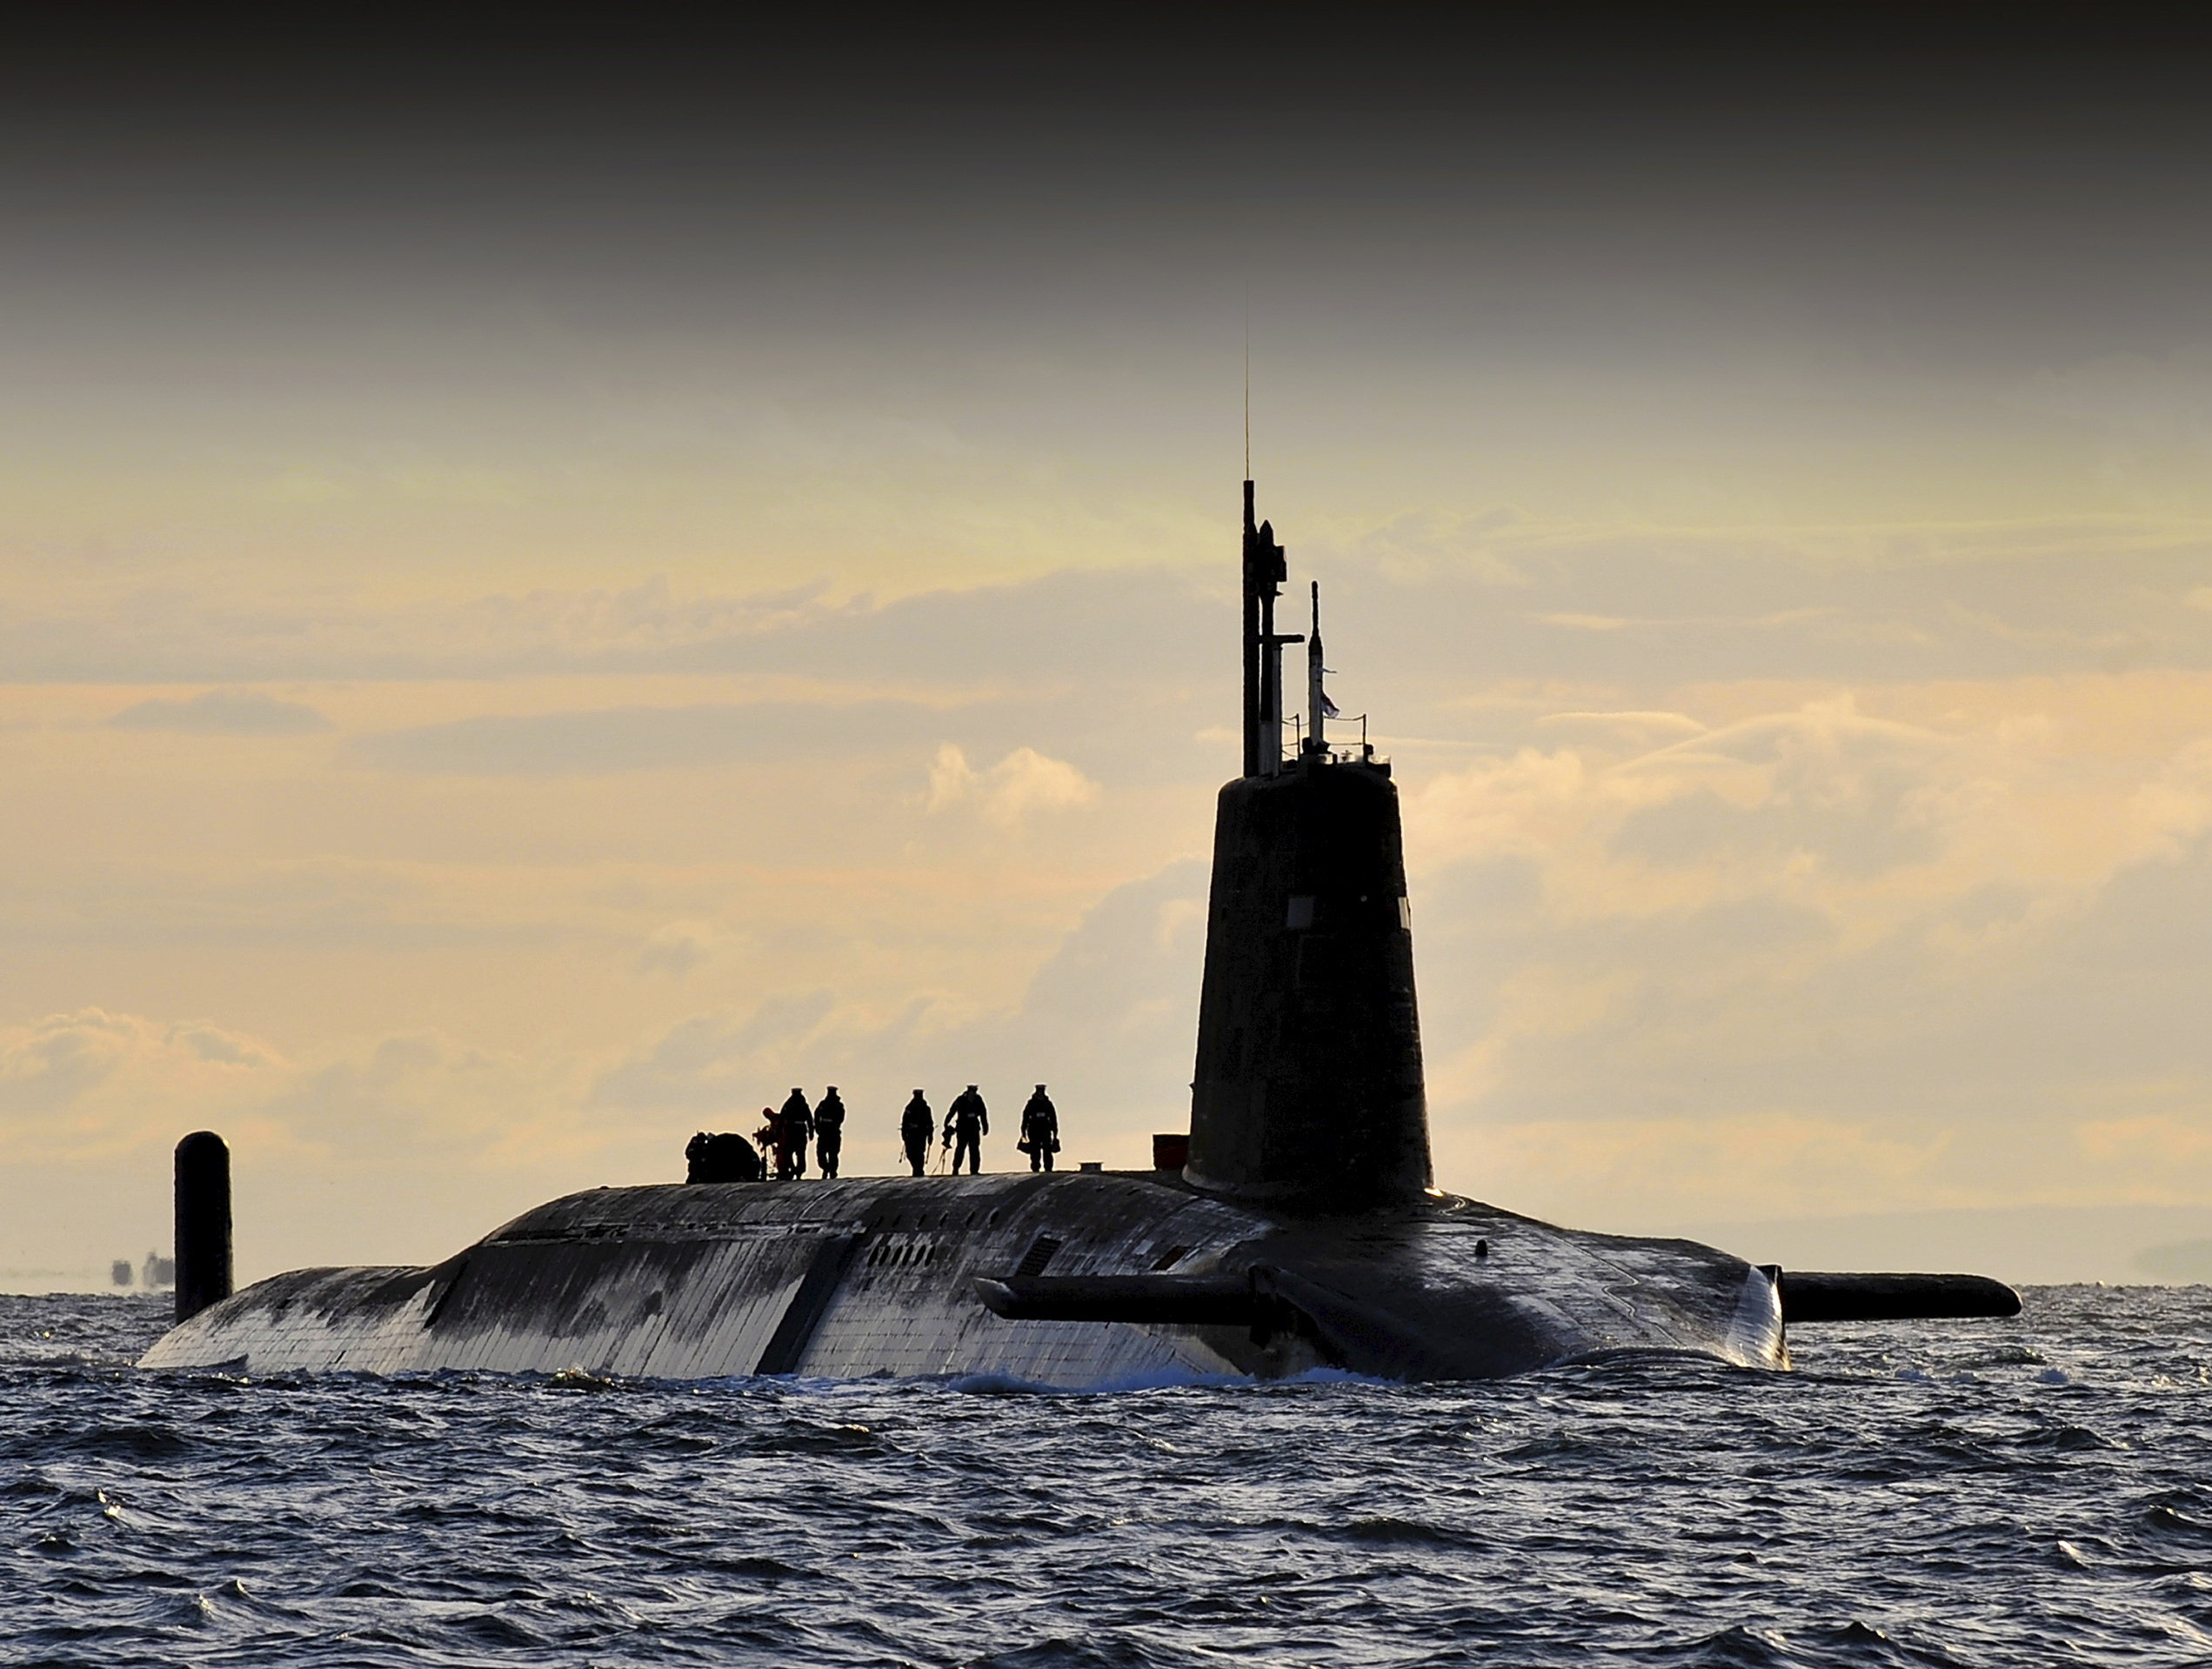 HMS Vanguard arrives back at HM Naval Base Clyde, Faslane, Scotland following a patrol. (File)